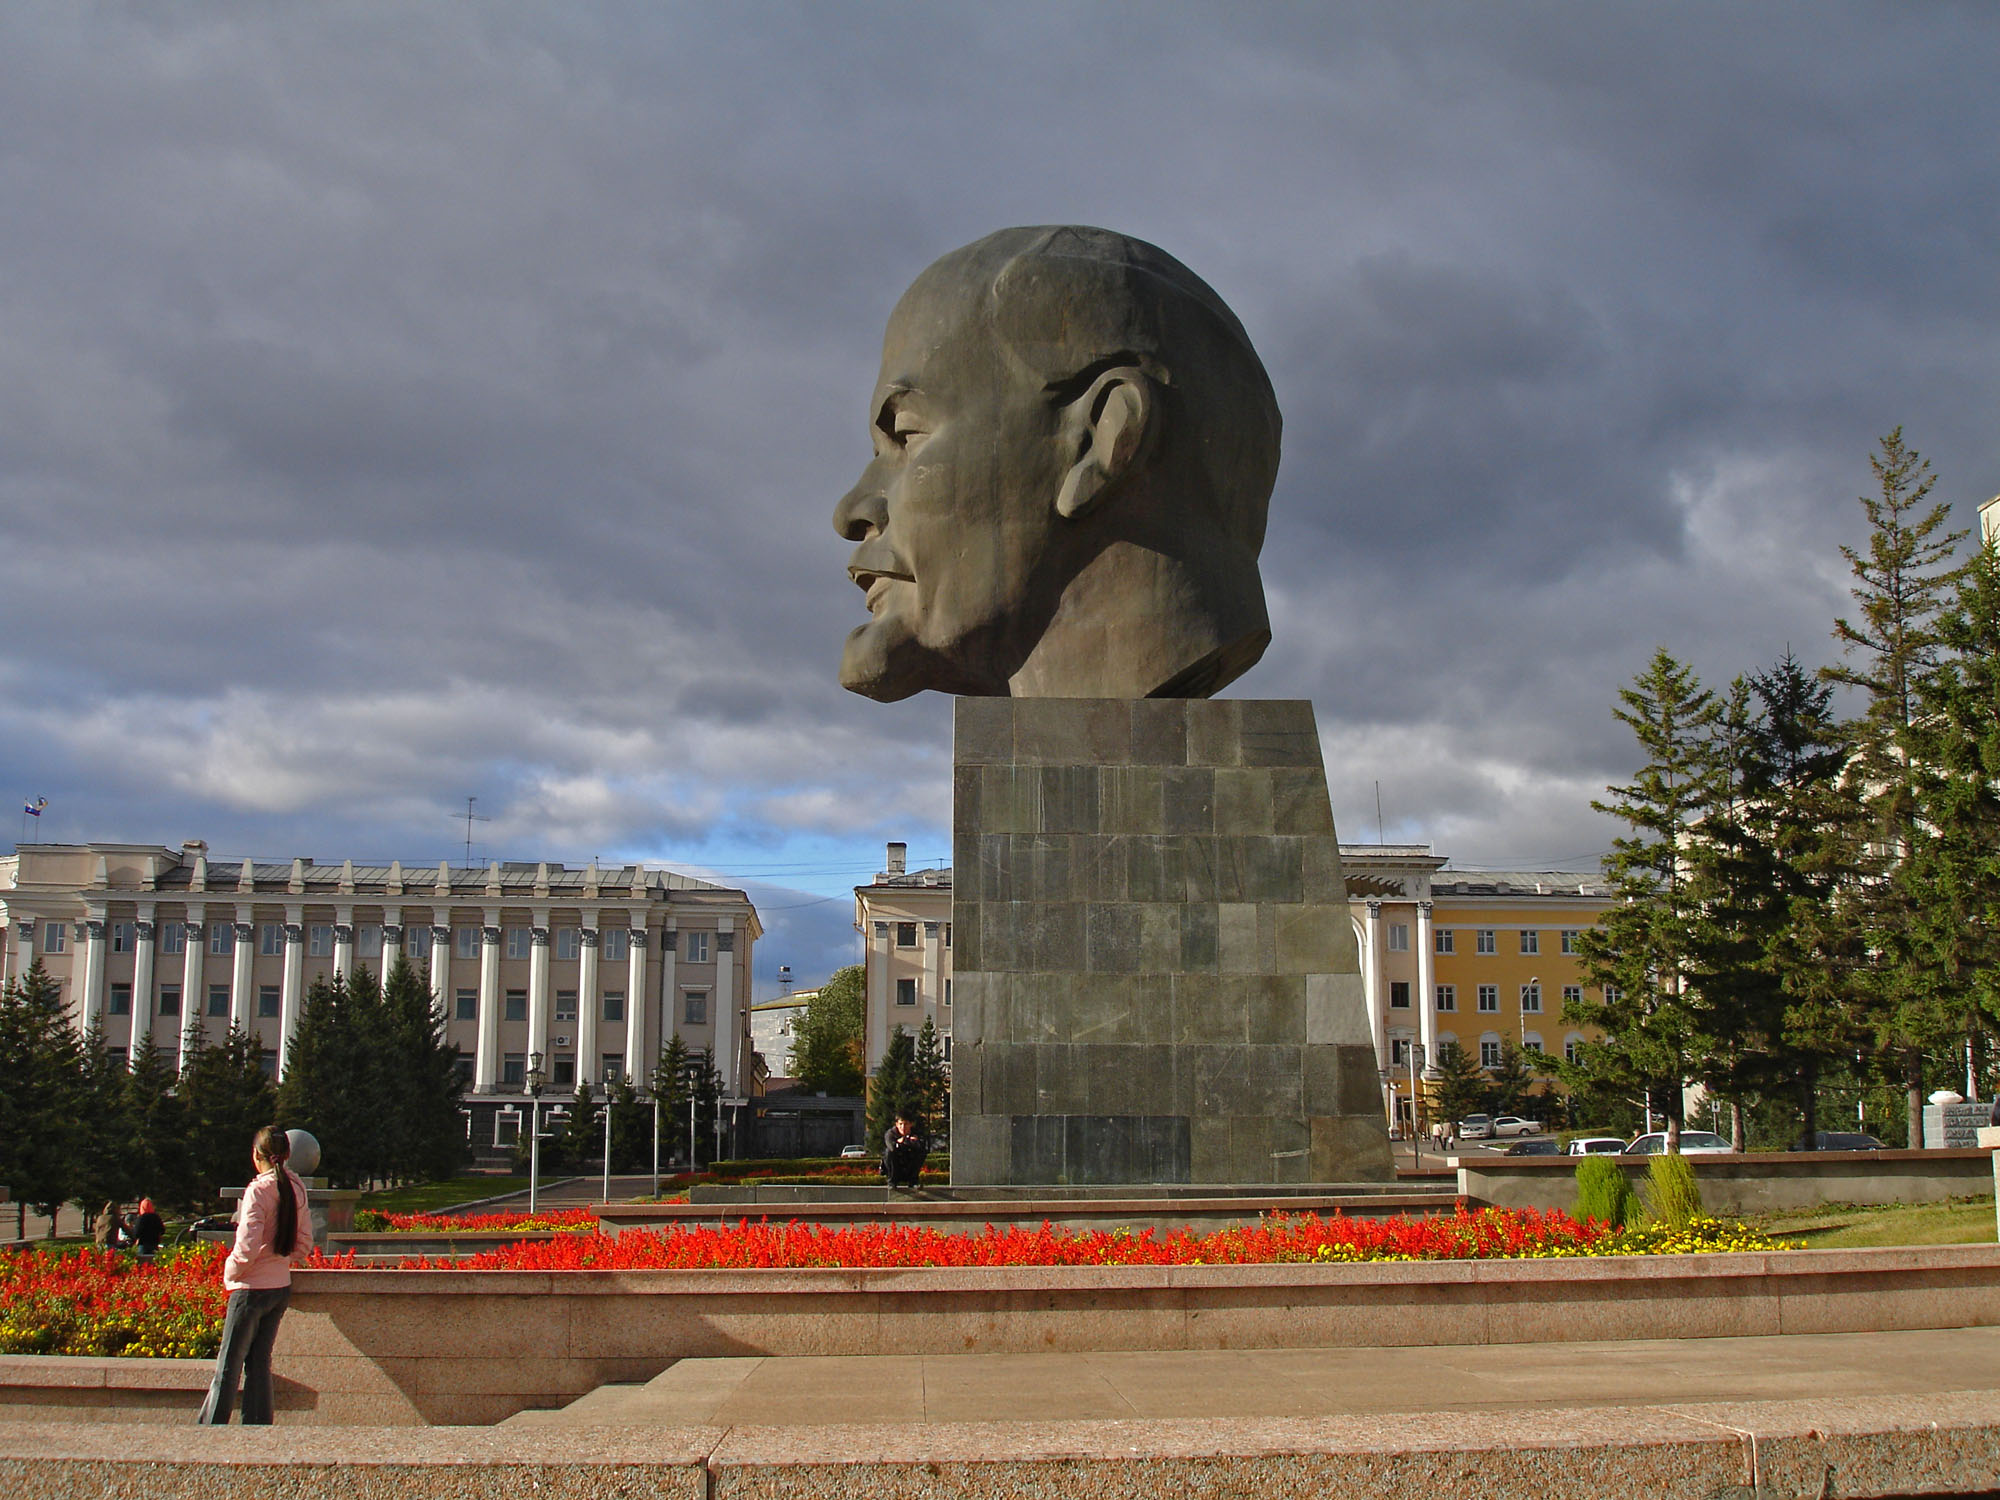 Lenin's statue in Ulan Ude, closed city during the USSR